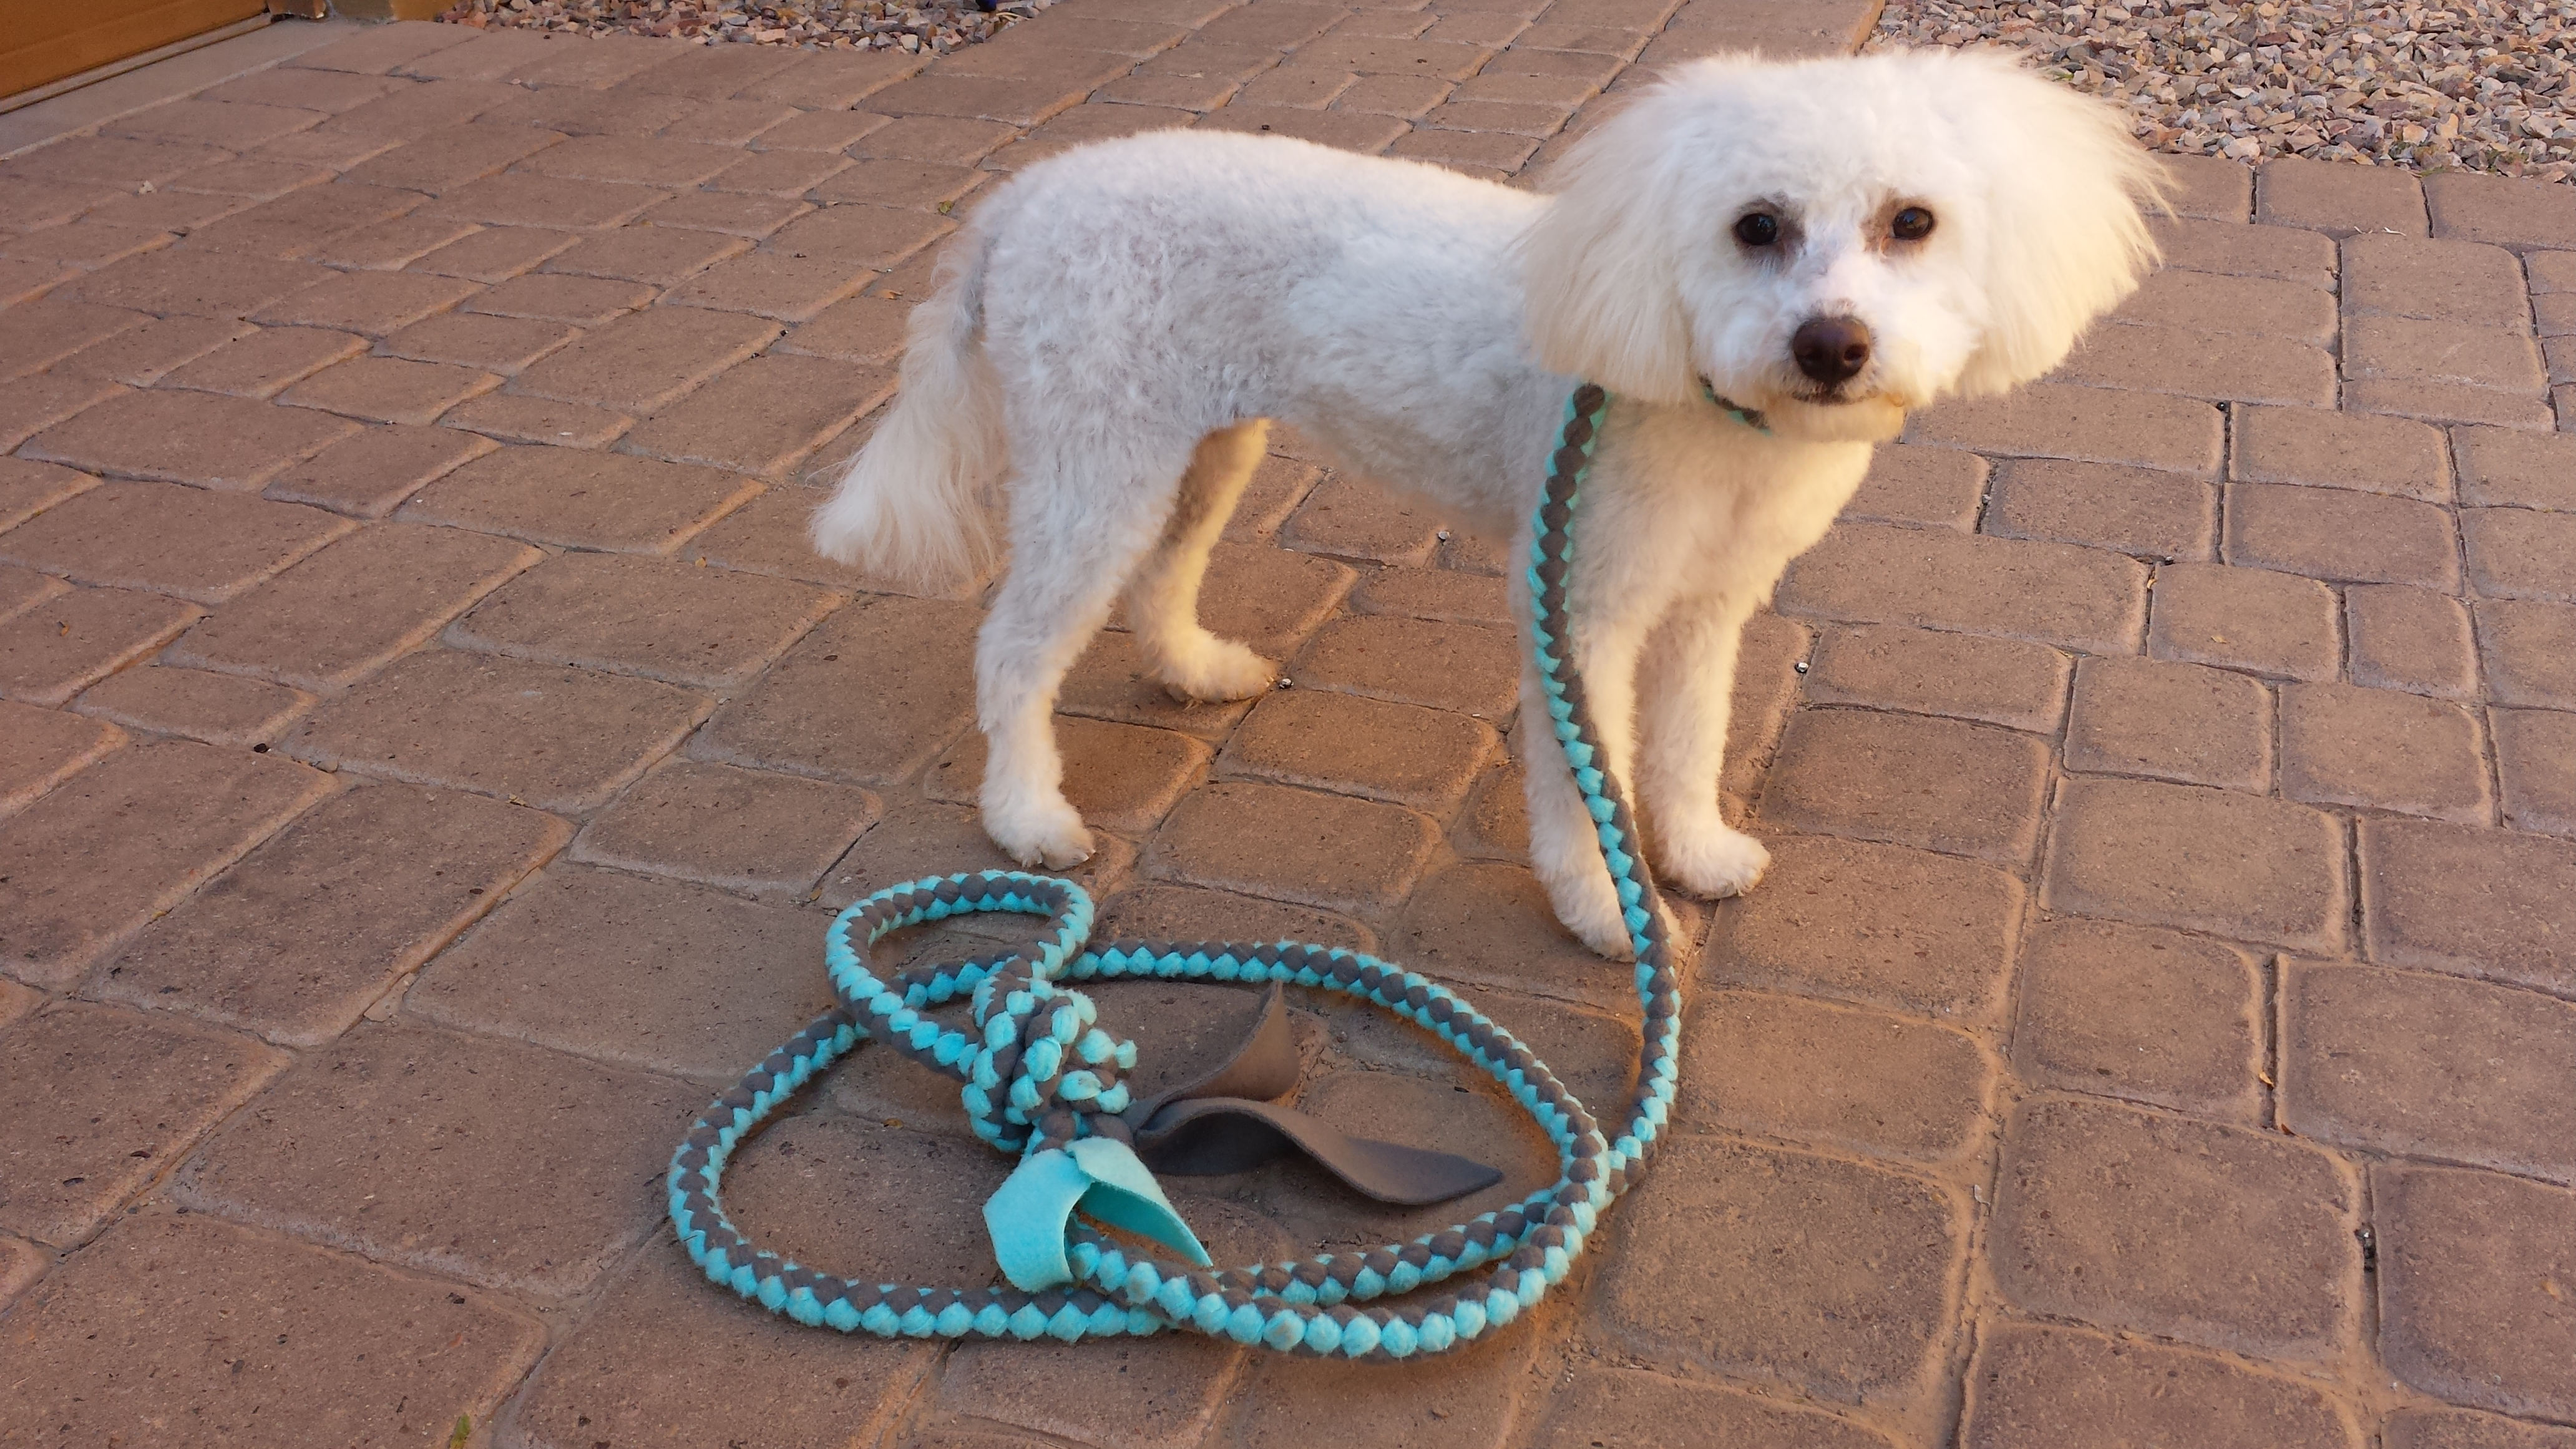 Khloee looking fancy with her leash from Action K9 Apparel!